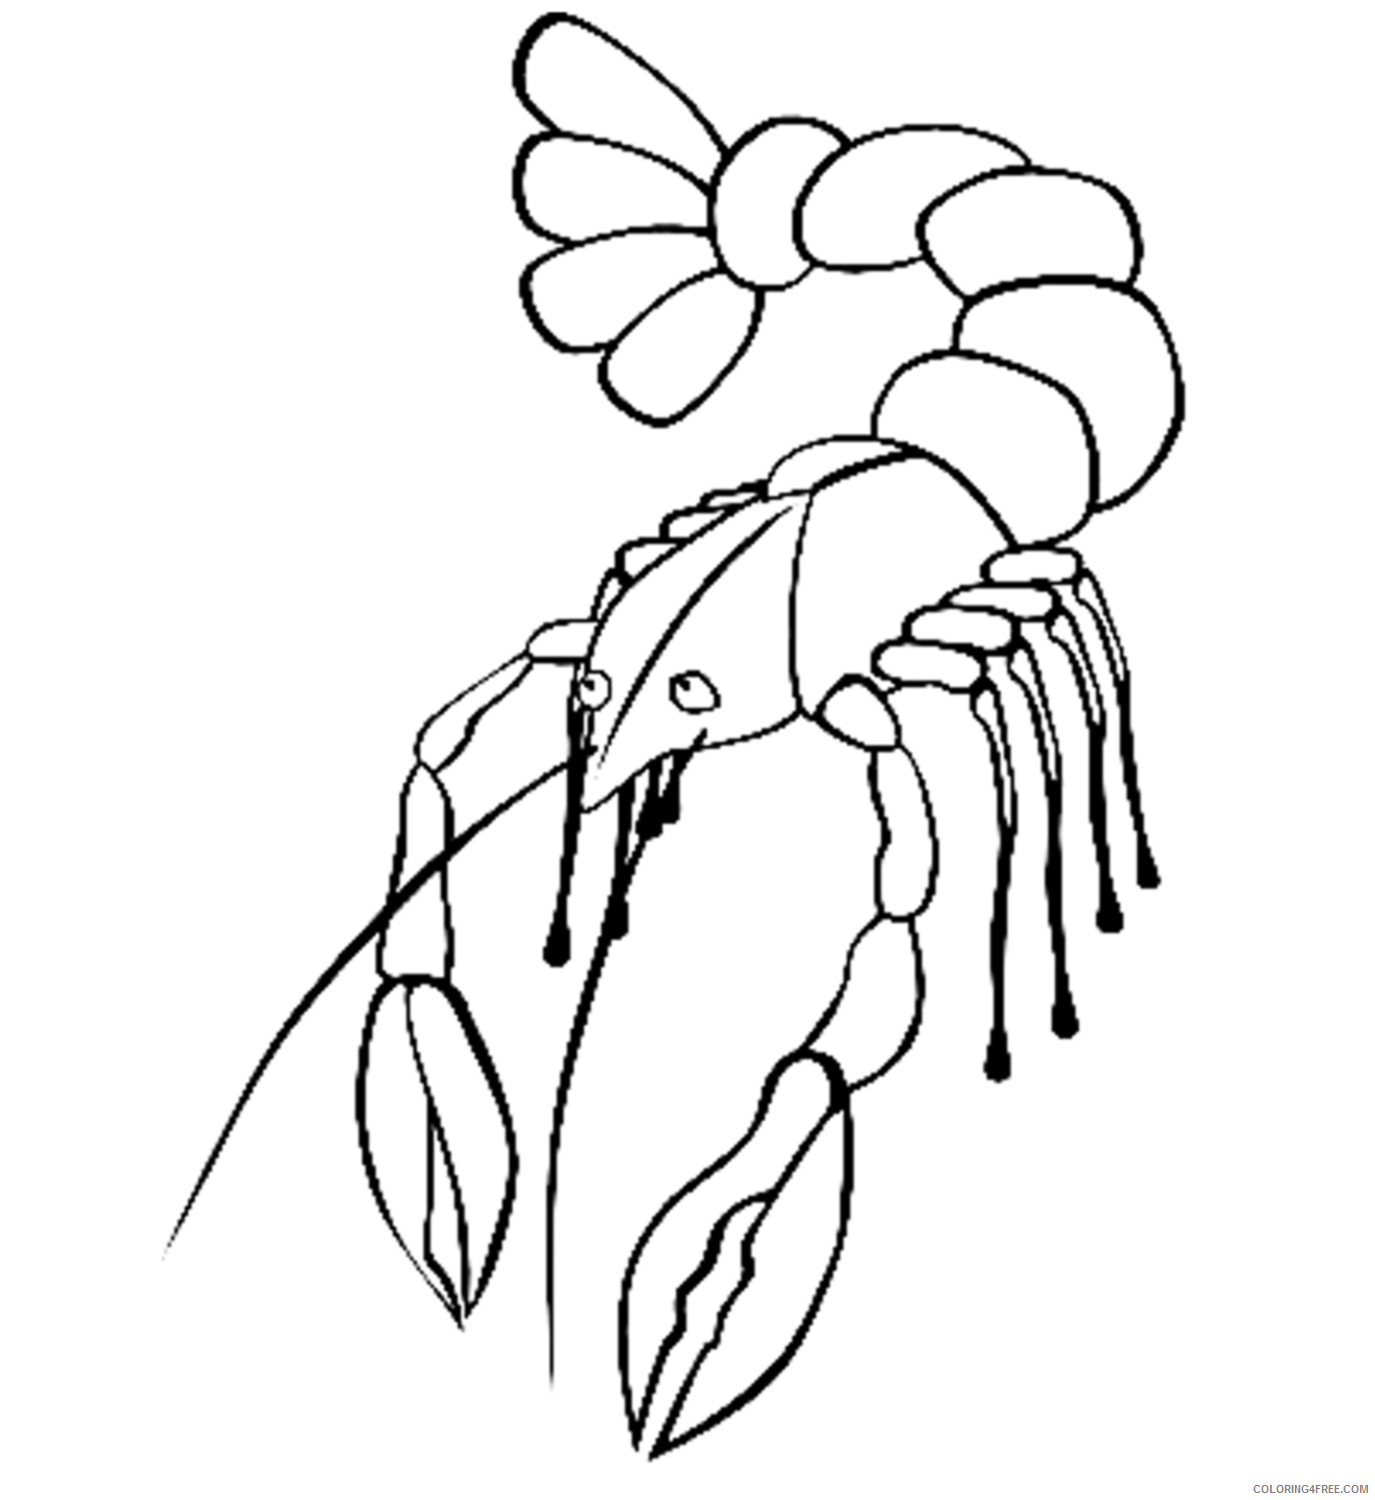 Quality Black and White Animals Coloring Pages animals designs crawfish boil koozie Printable Coloring4free